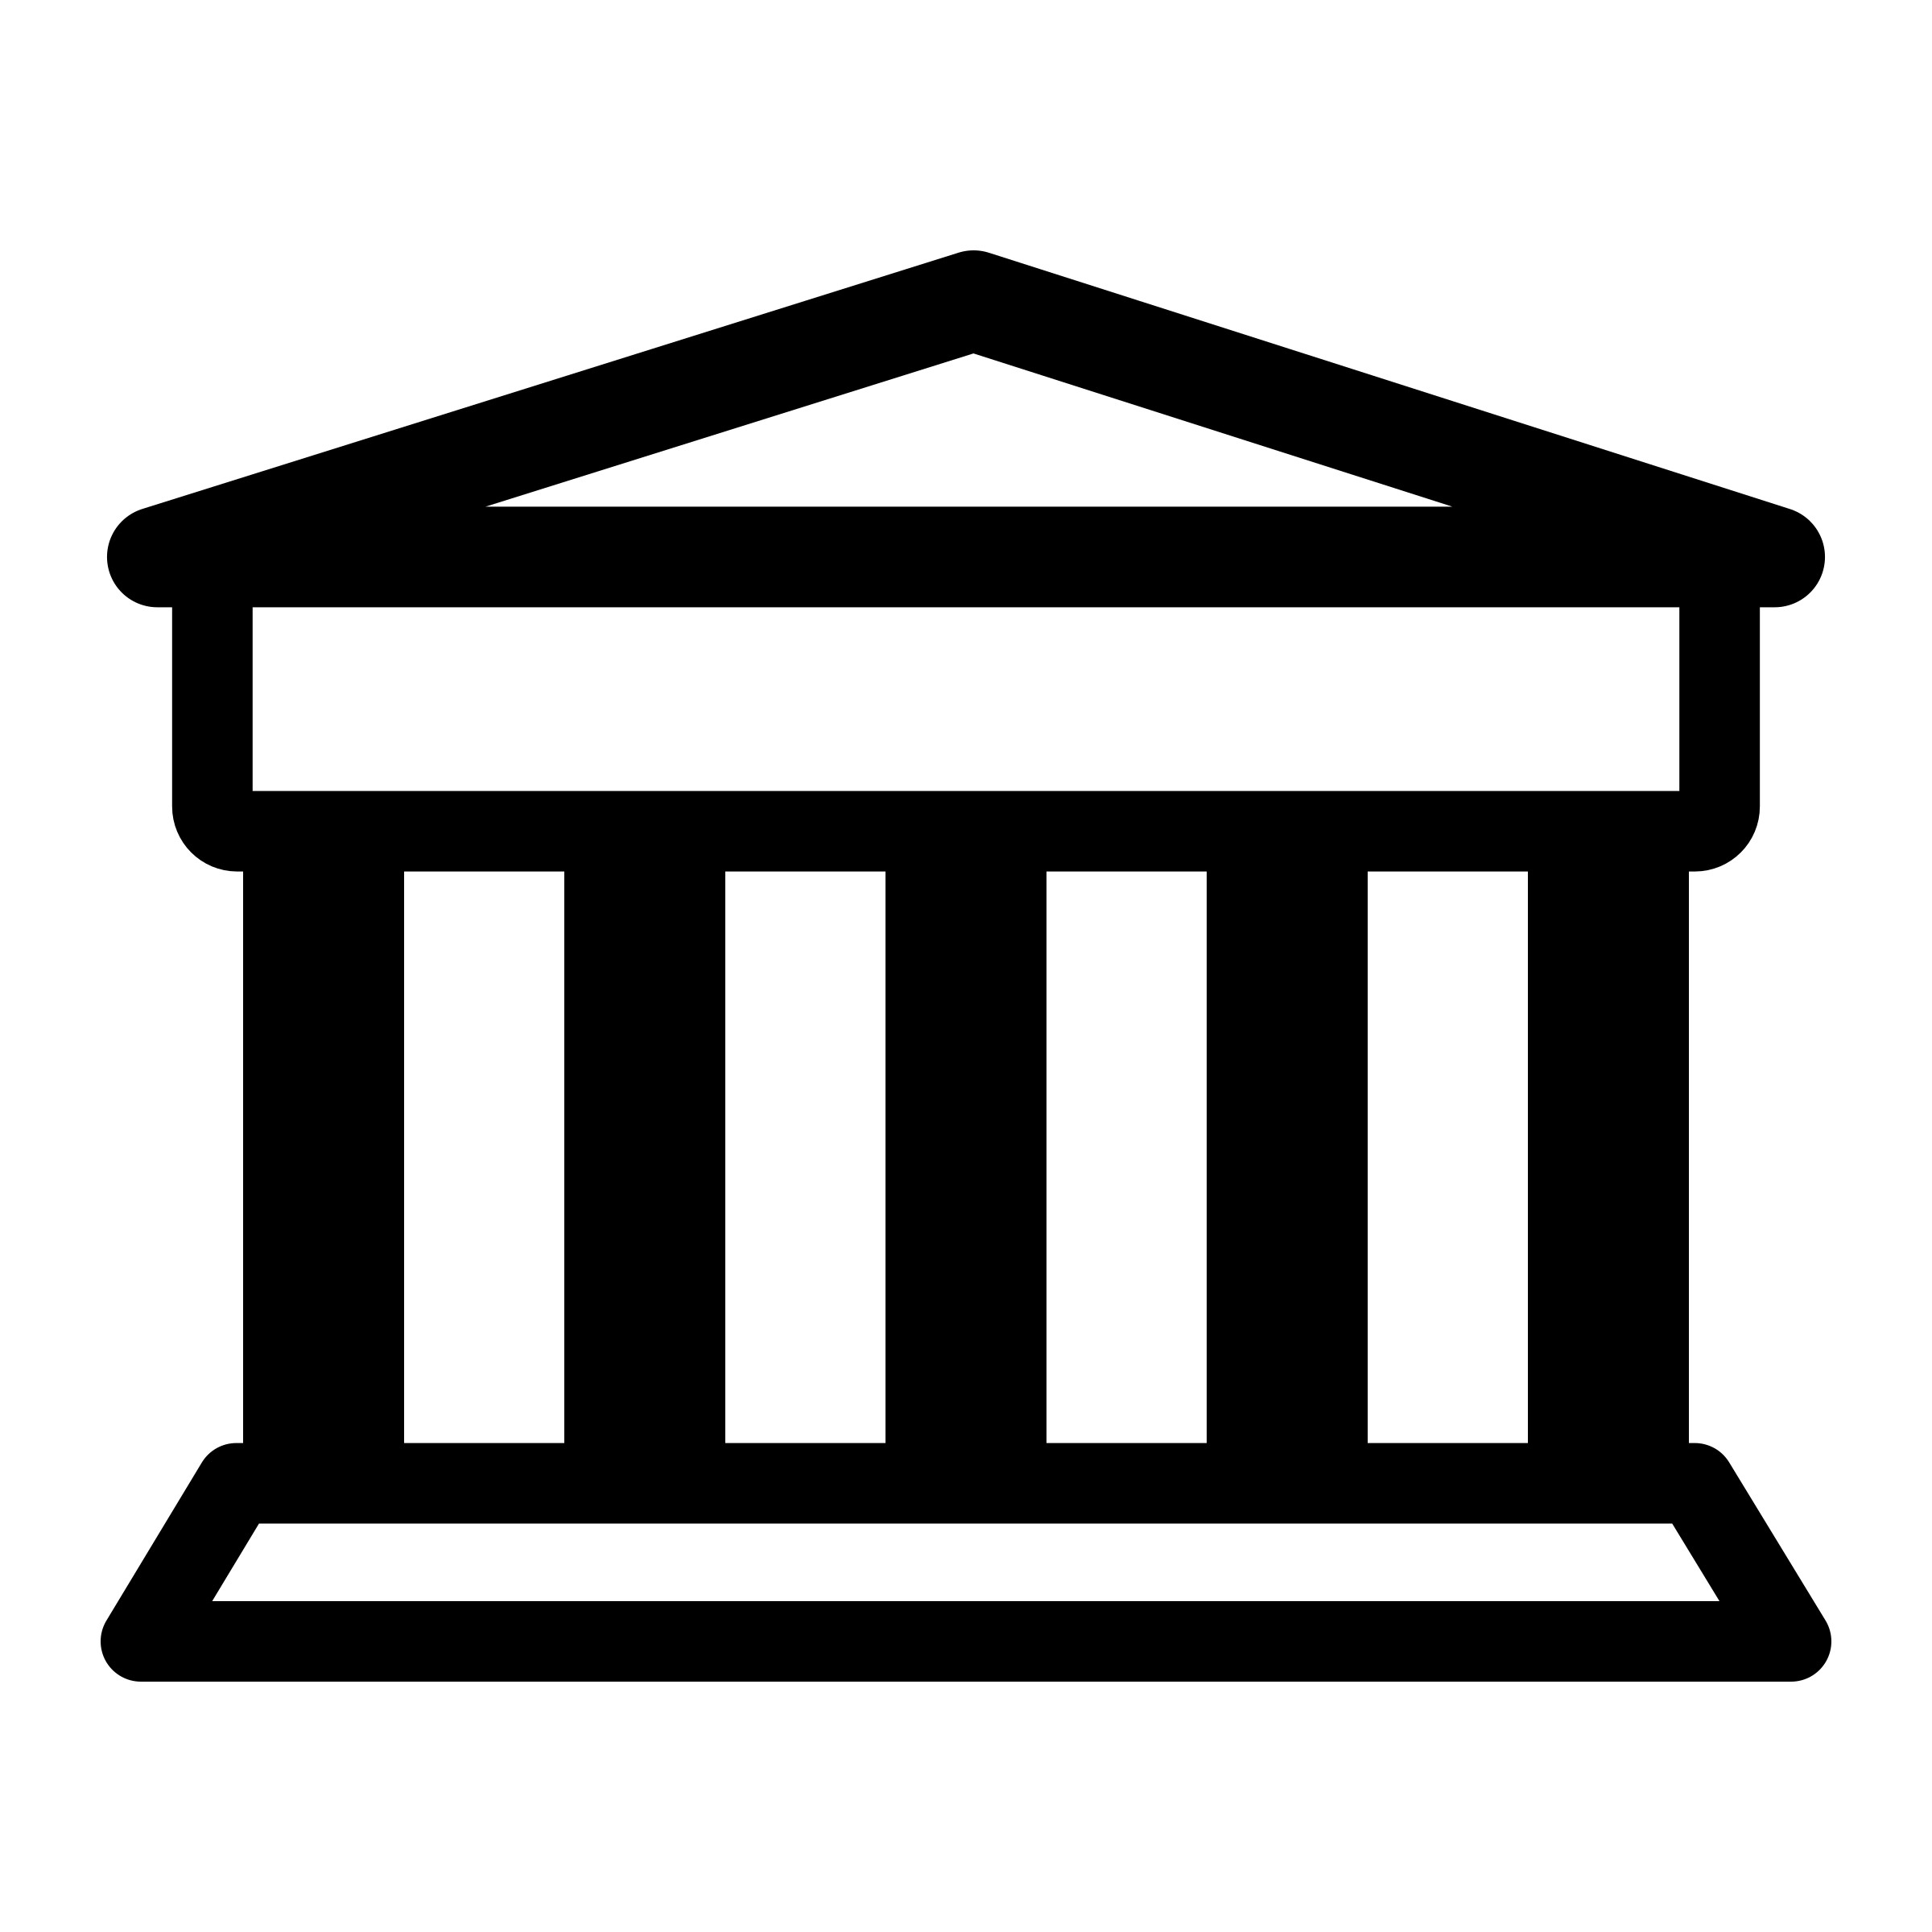 Clipart Of Bank.